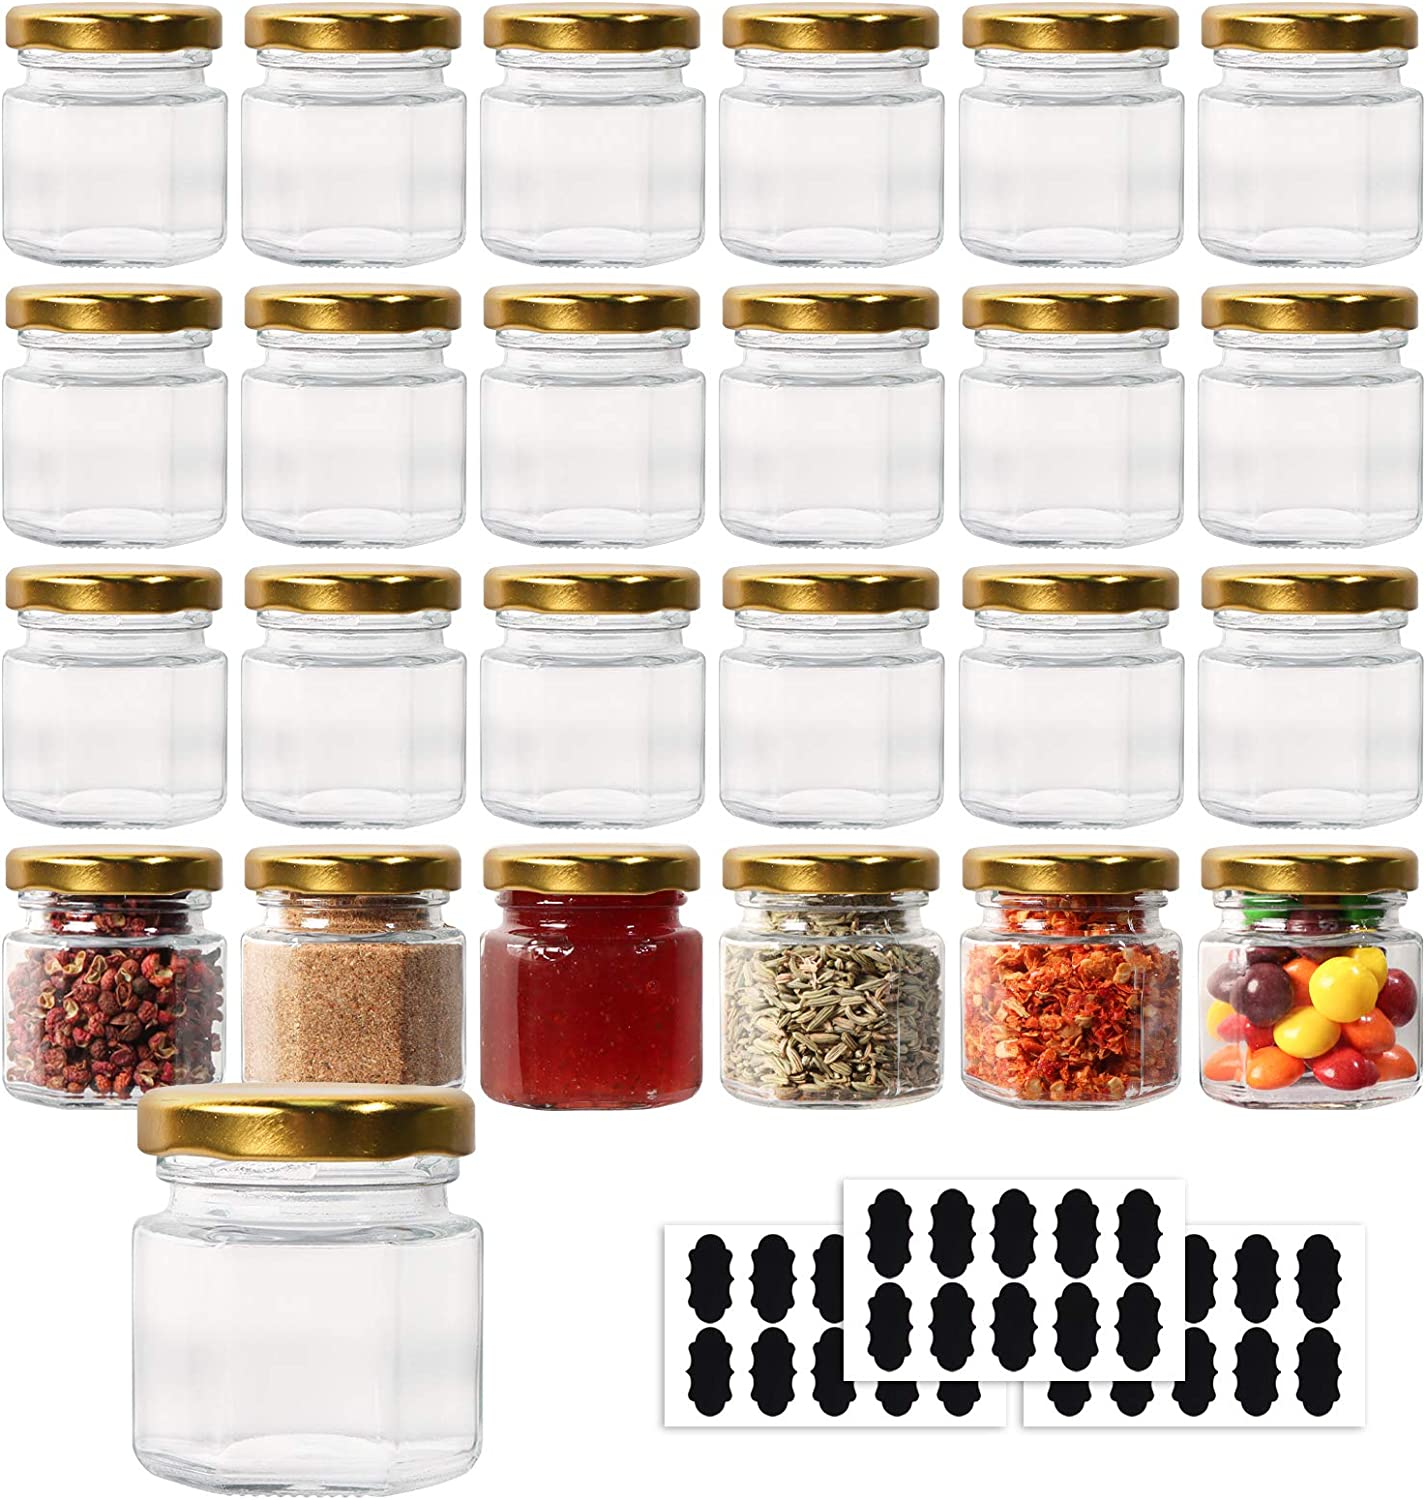 HWASHIN 24 Pack 1.5 oz Hexagon Mini Glass Jars with Gold Lids, Honey Jars Small Spice Jars Mason Jars with 30pcs Labels for Jam, Baby Foods, Gifts, Wedding Party Favors